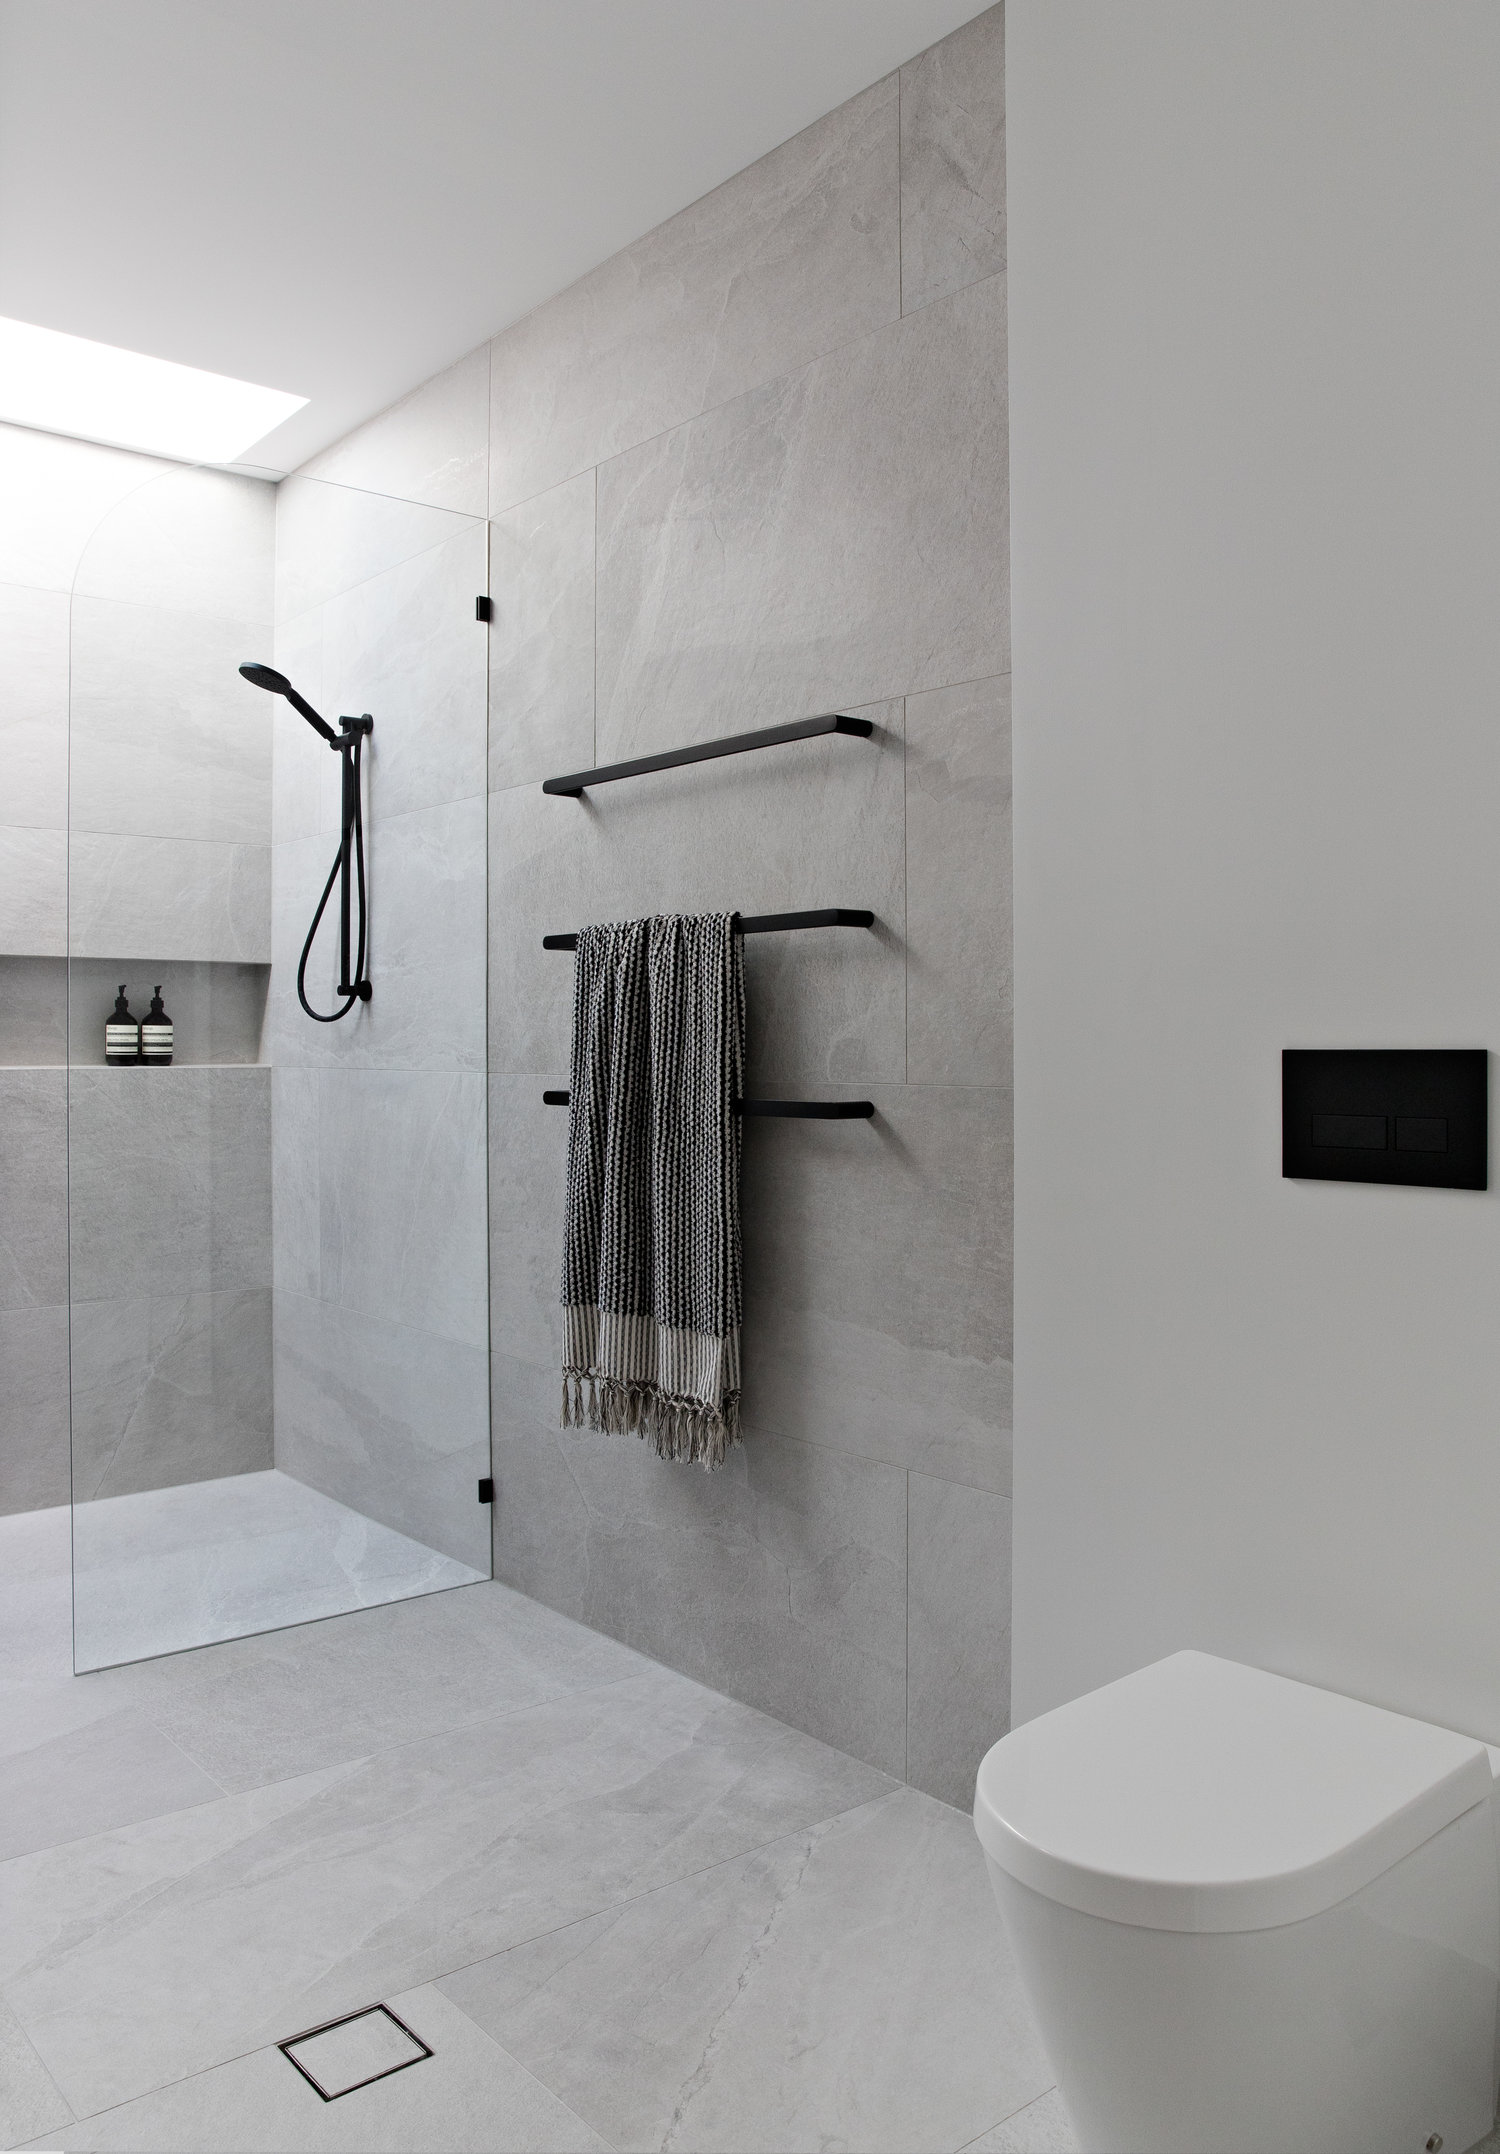 Creating A Designer Look In Your Bathroom With Towel Rails Zephyr Stone